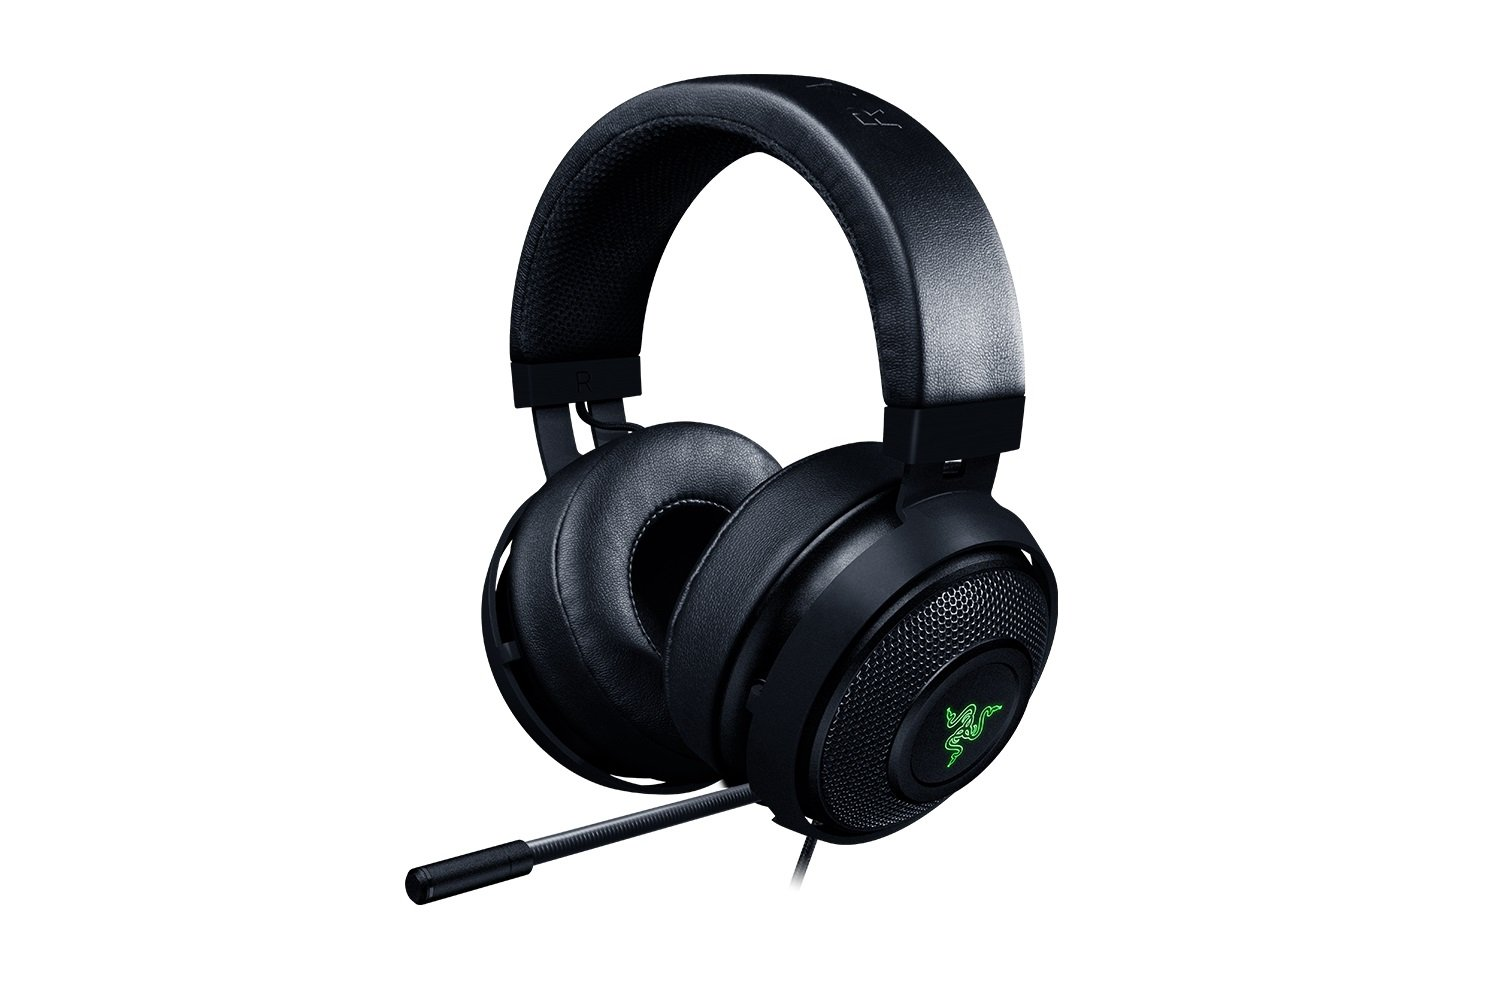 PS4-Headset: Razer Kraken 7.1 V2